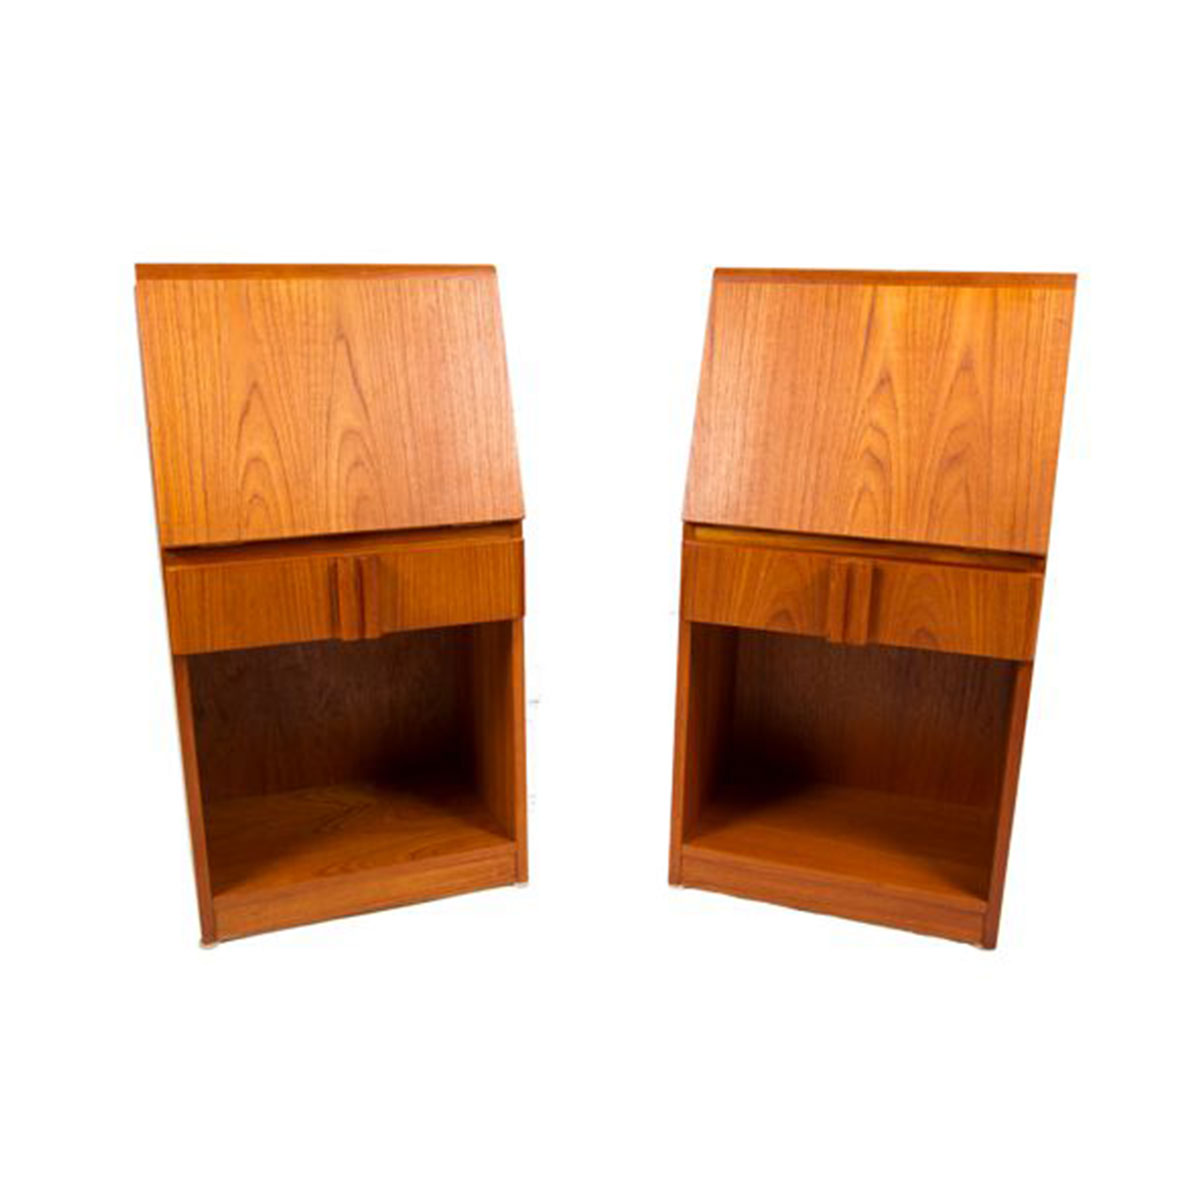 Pair of Tall and Slim Danish Modern Teak Night Stands – Side Tables with Stylish Pulls